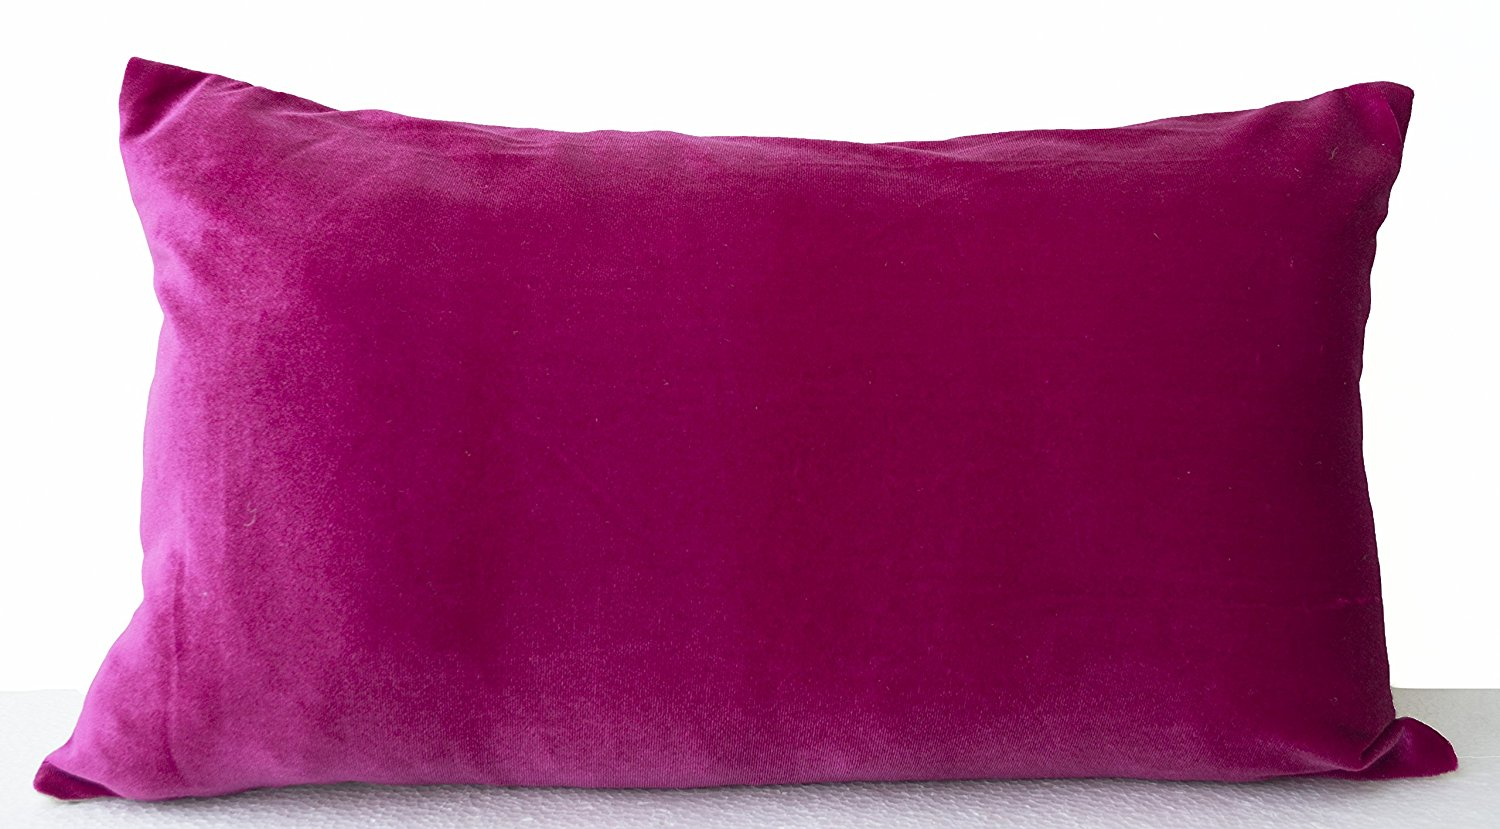 Buy Amore Beaute Handcrafted Decorative Pillow Covers In Peach Emerald Green Navy Blue Hot Pink Chocolate Brown Olive Green Velvet And Oatmeal Linen Couch Pillow Cover Sofa Pillow Cover